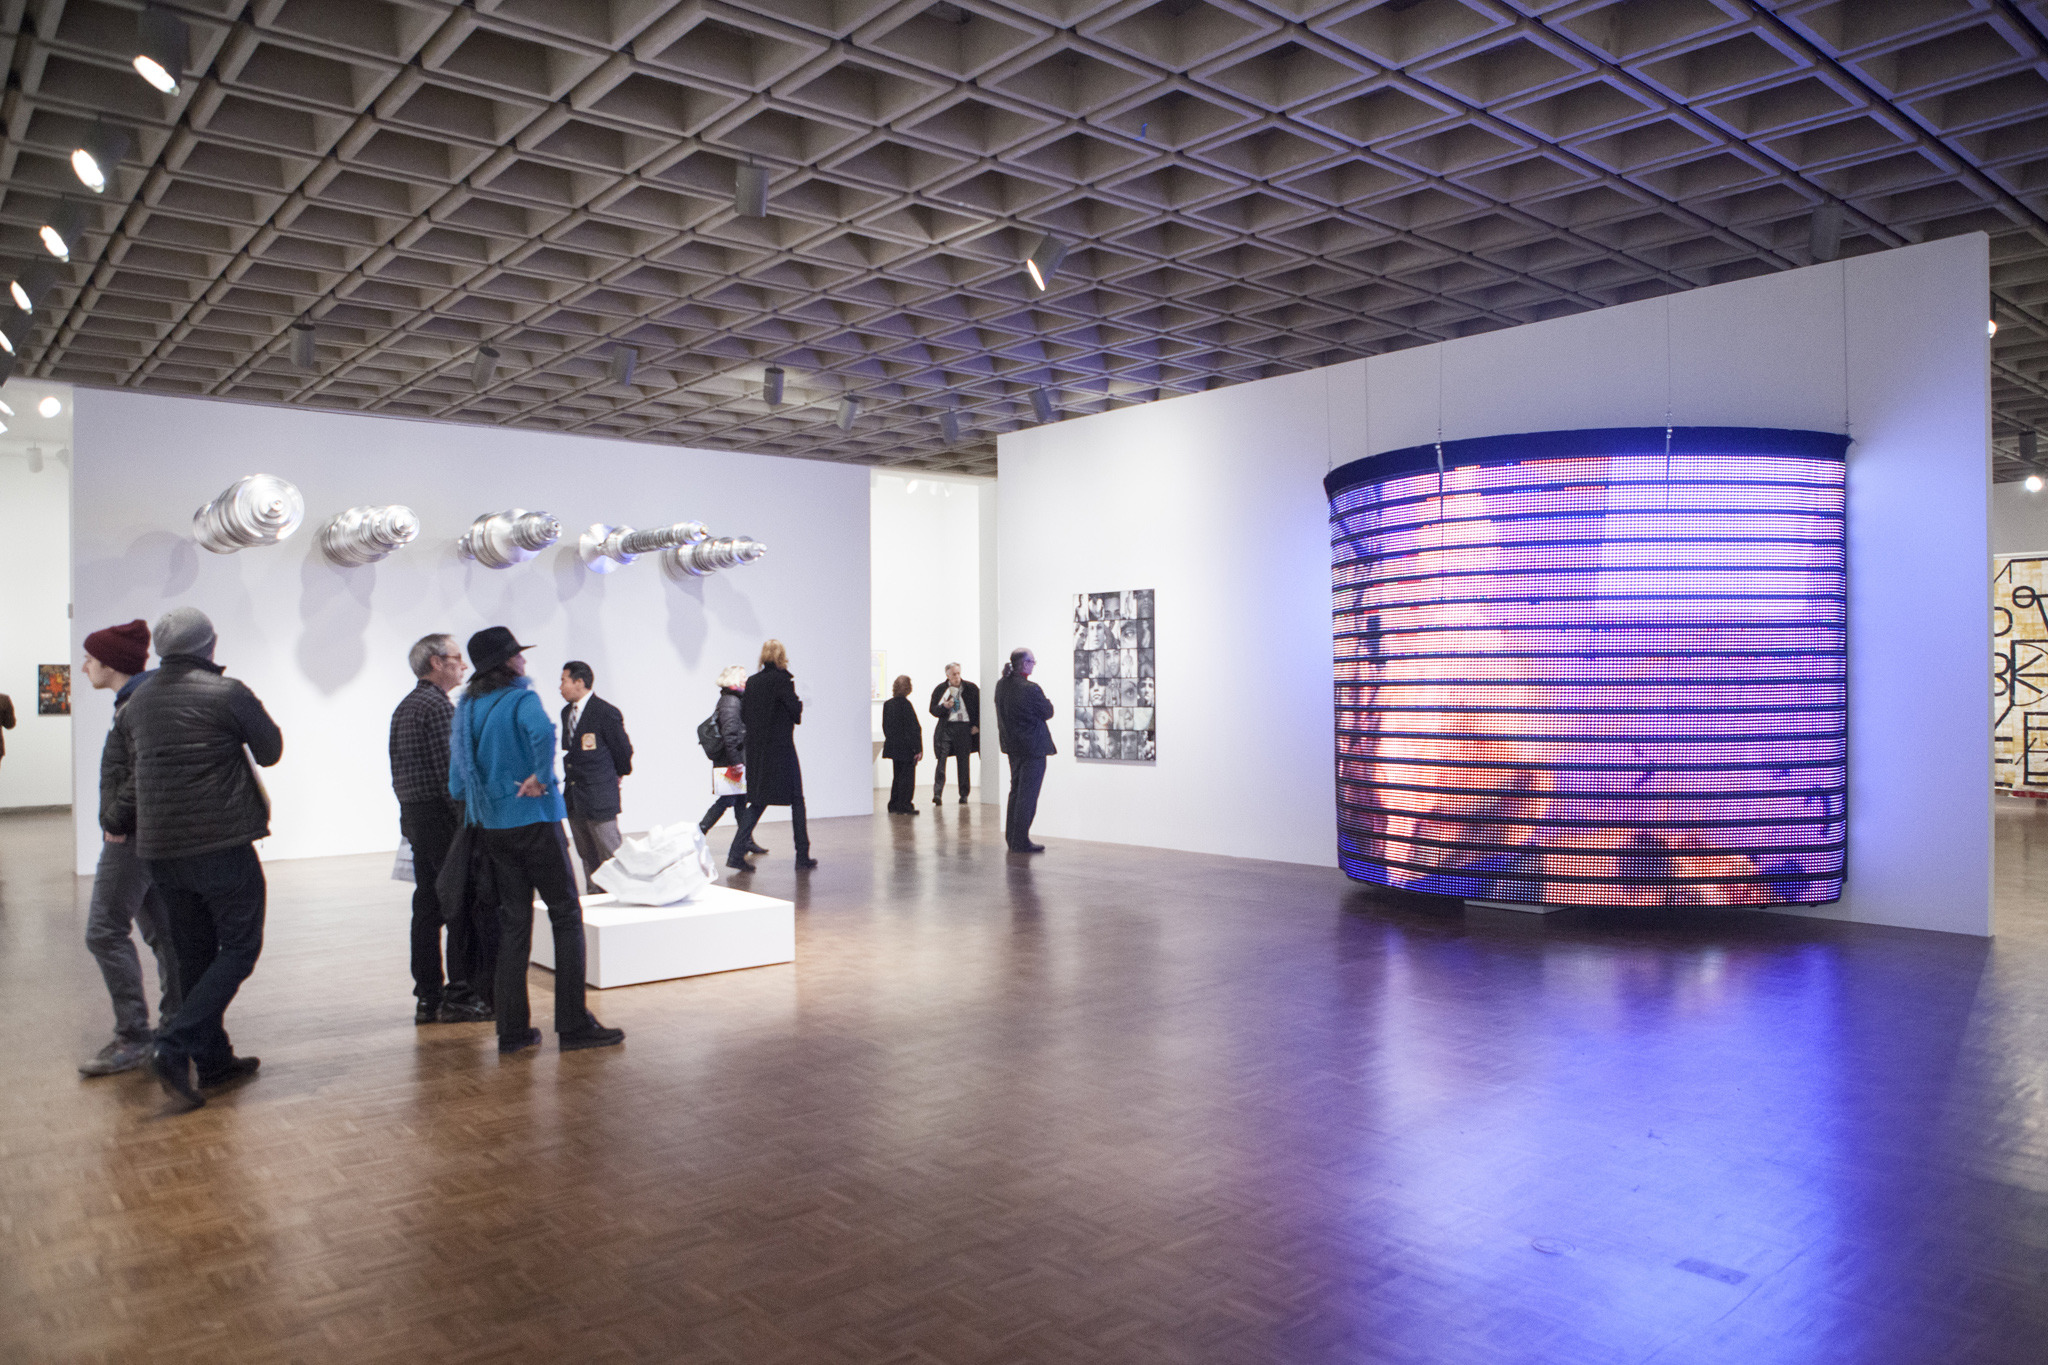 Installation view of the 2014 Whitney Biennial